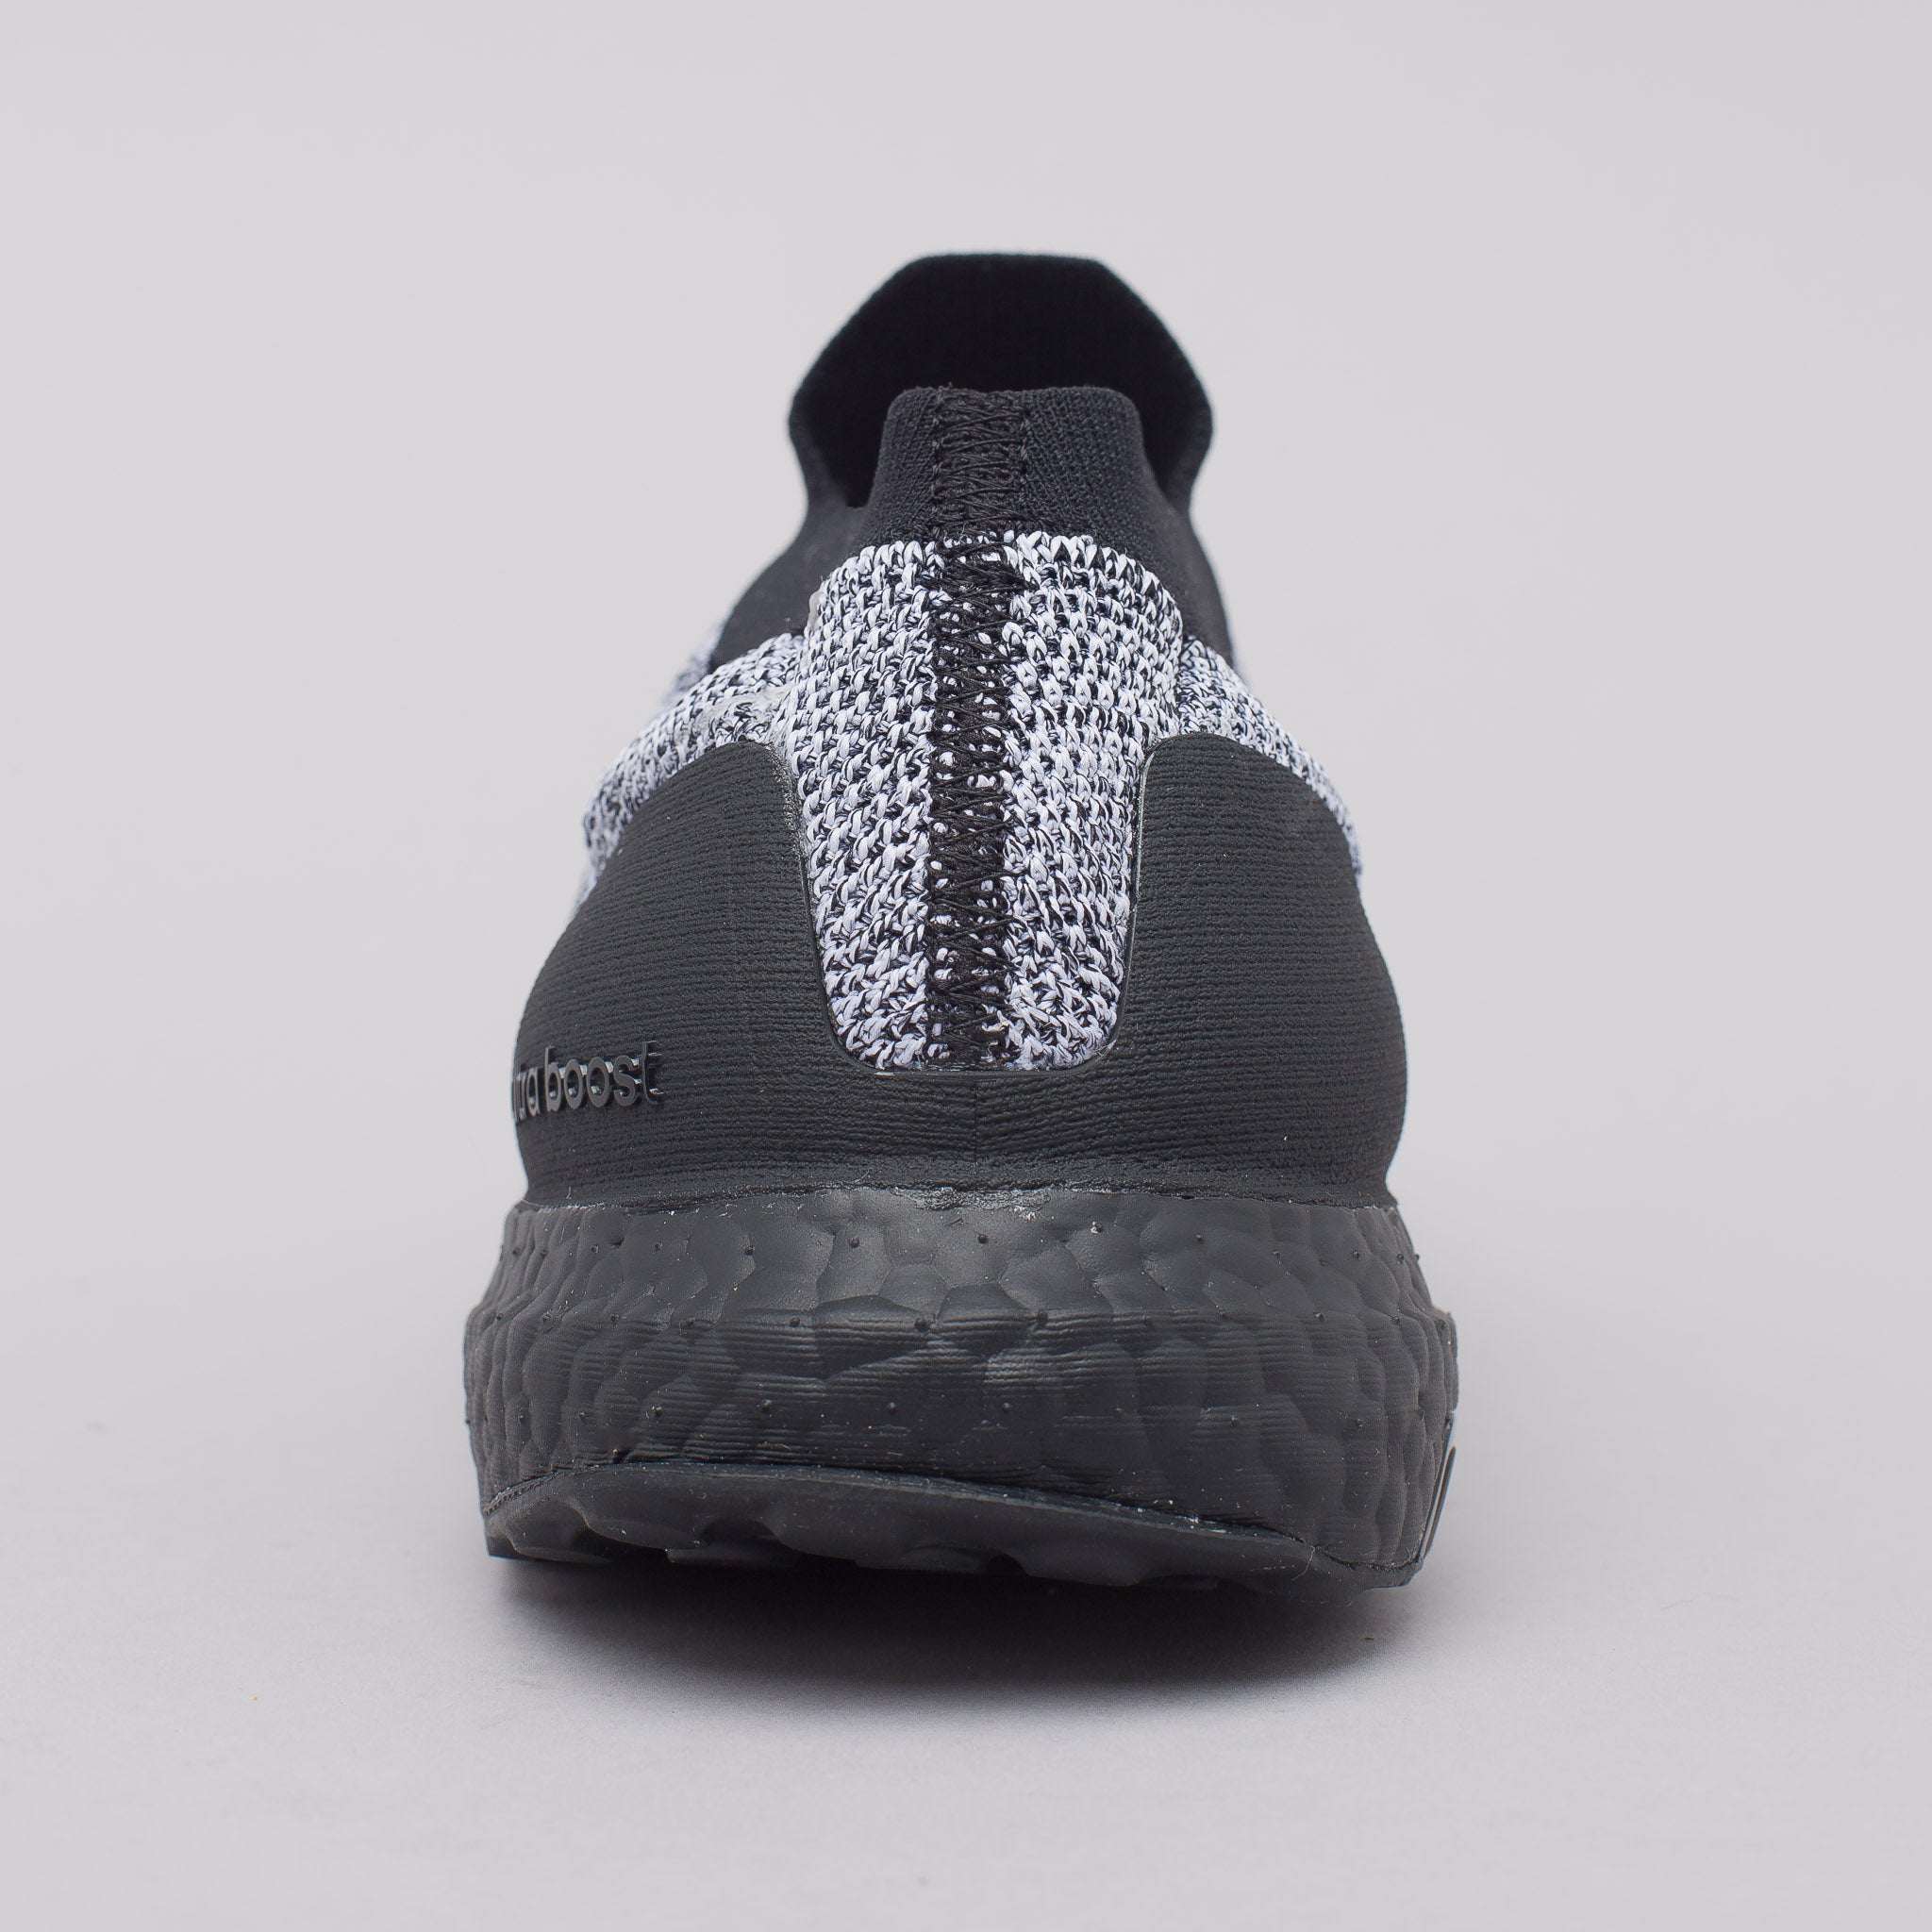 Ultra Boost Laceless in Core Black/White